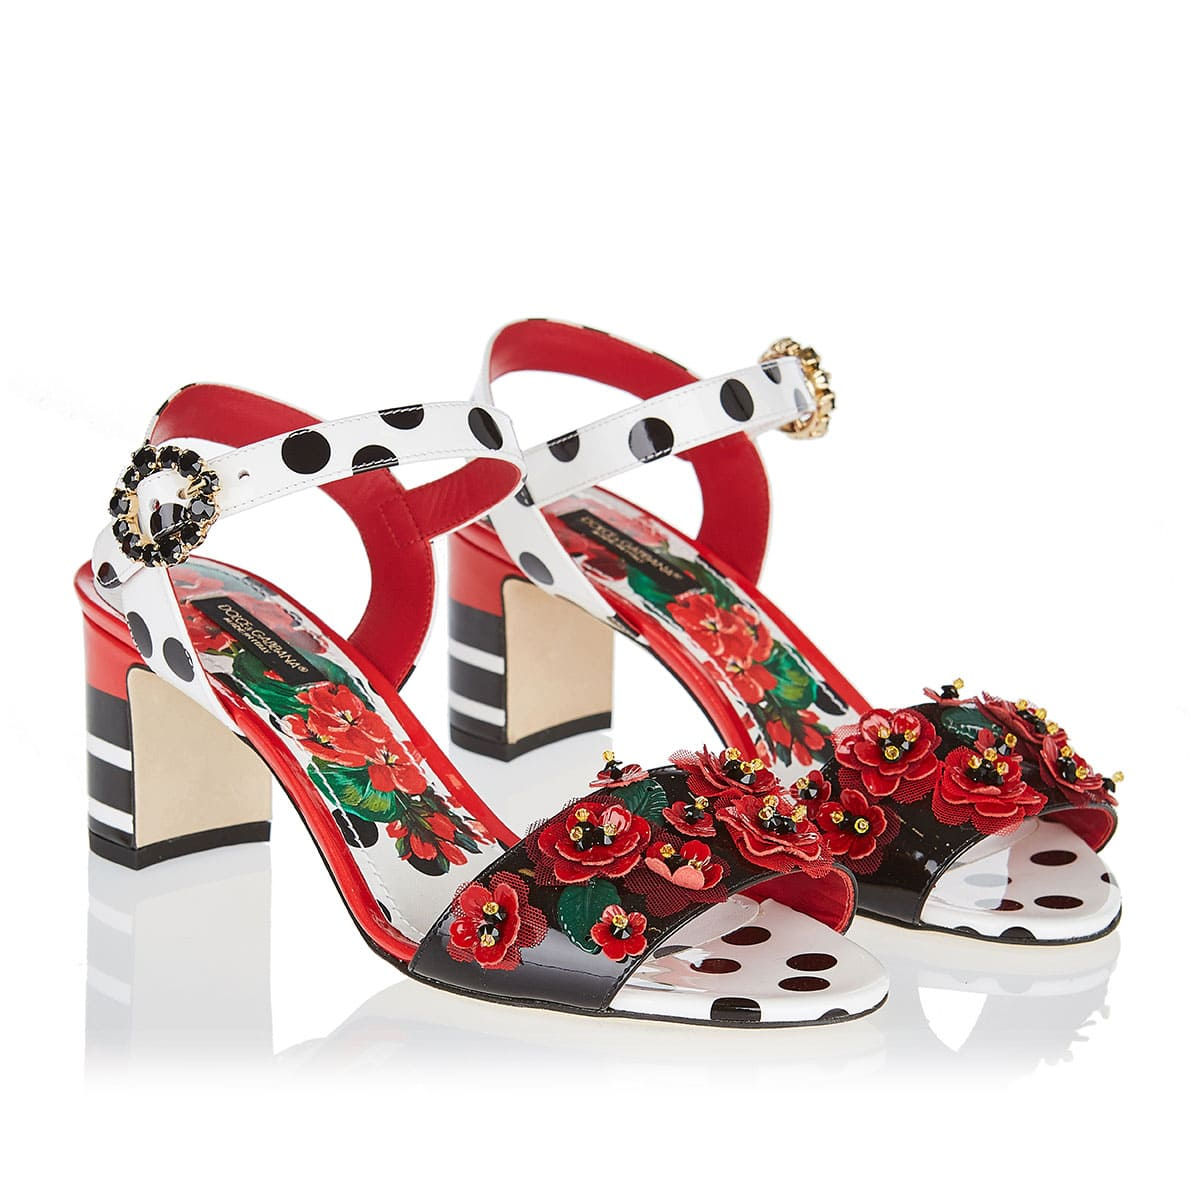 Portofino-print sandals with applique flowers